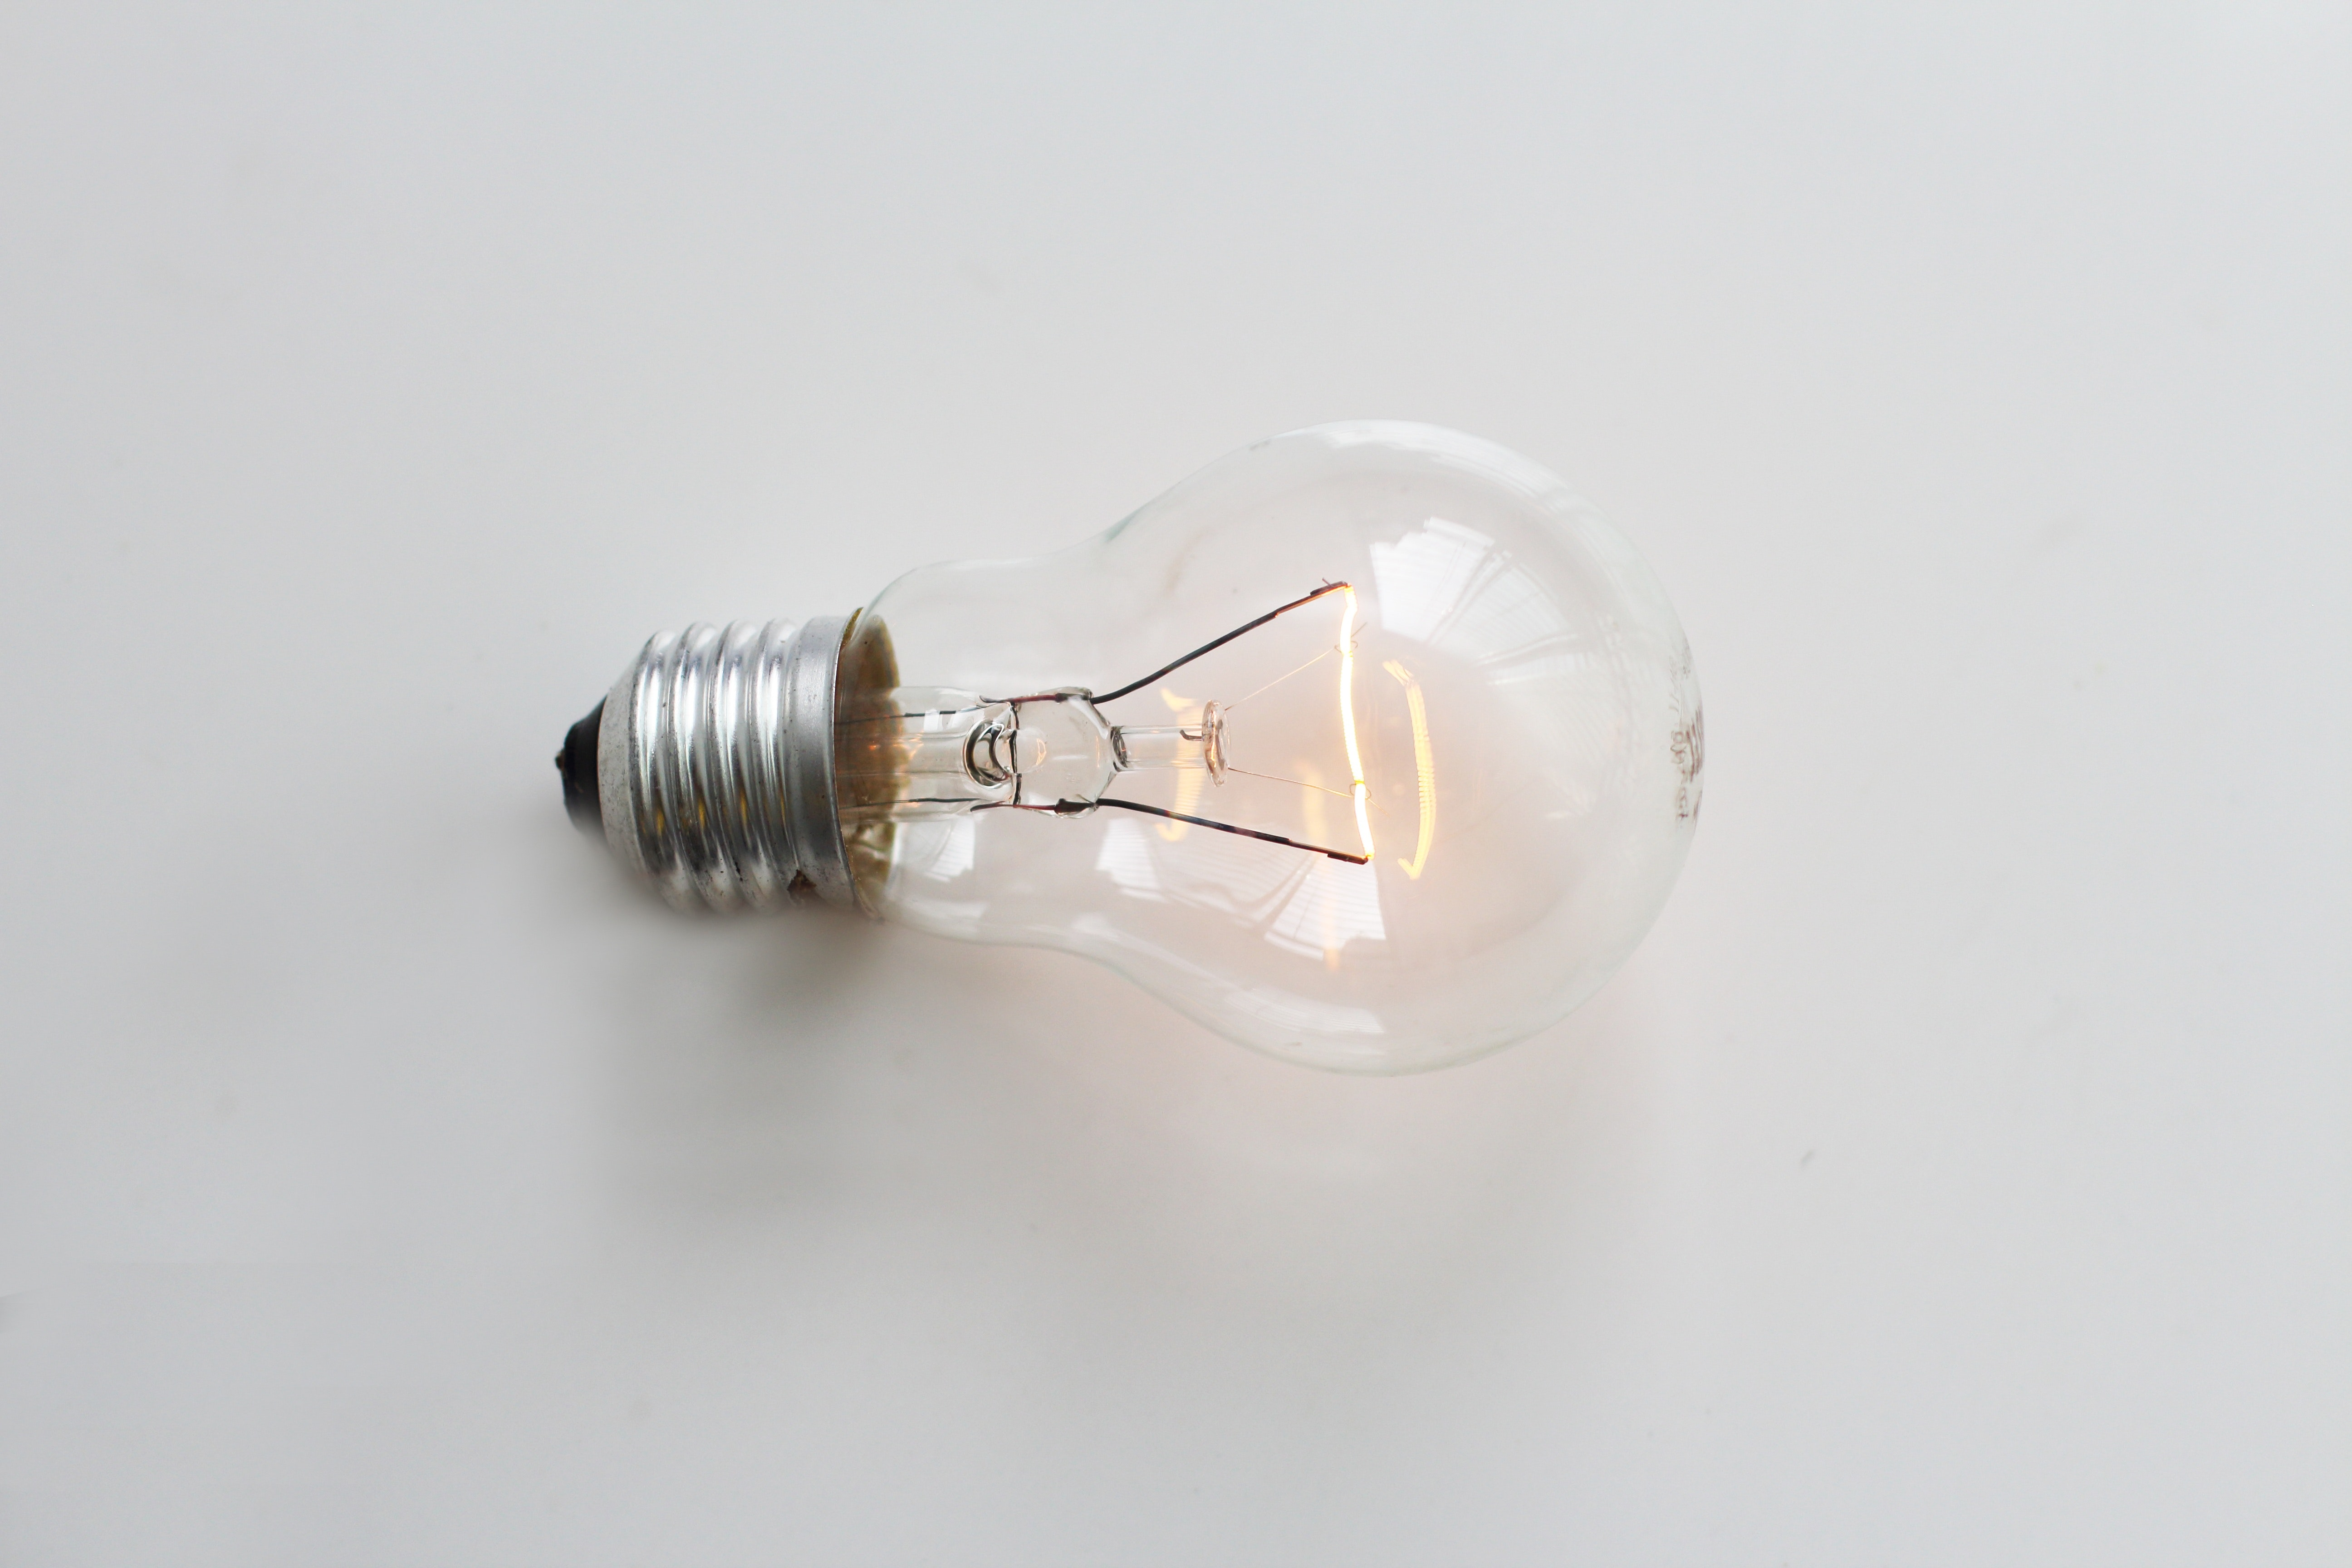 clear light bulb sitting on a white table